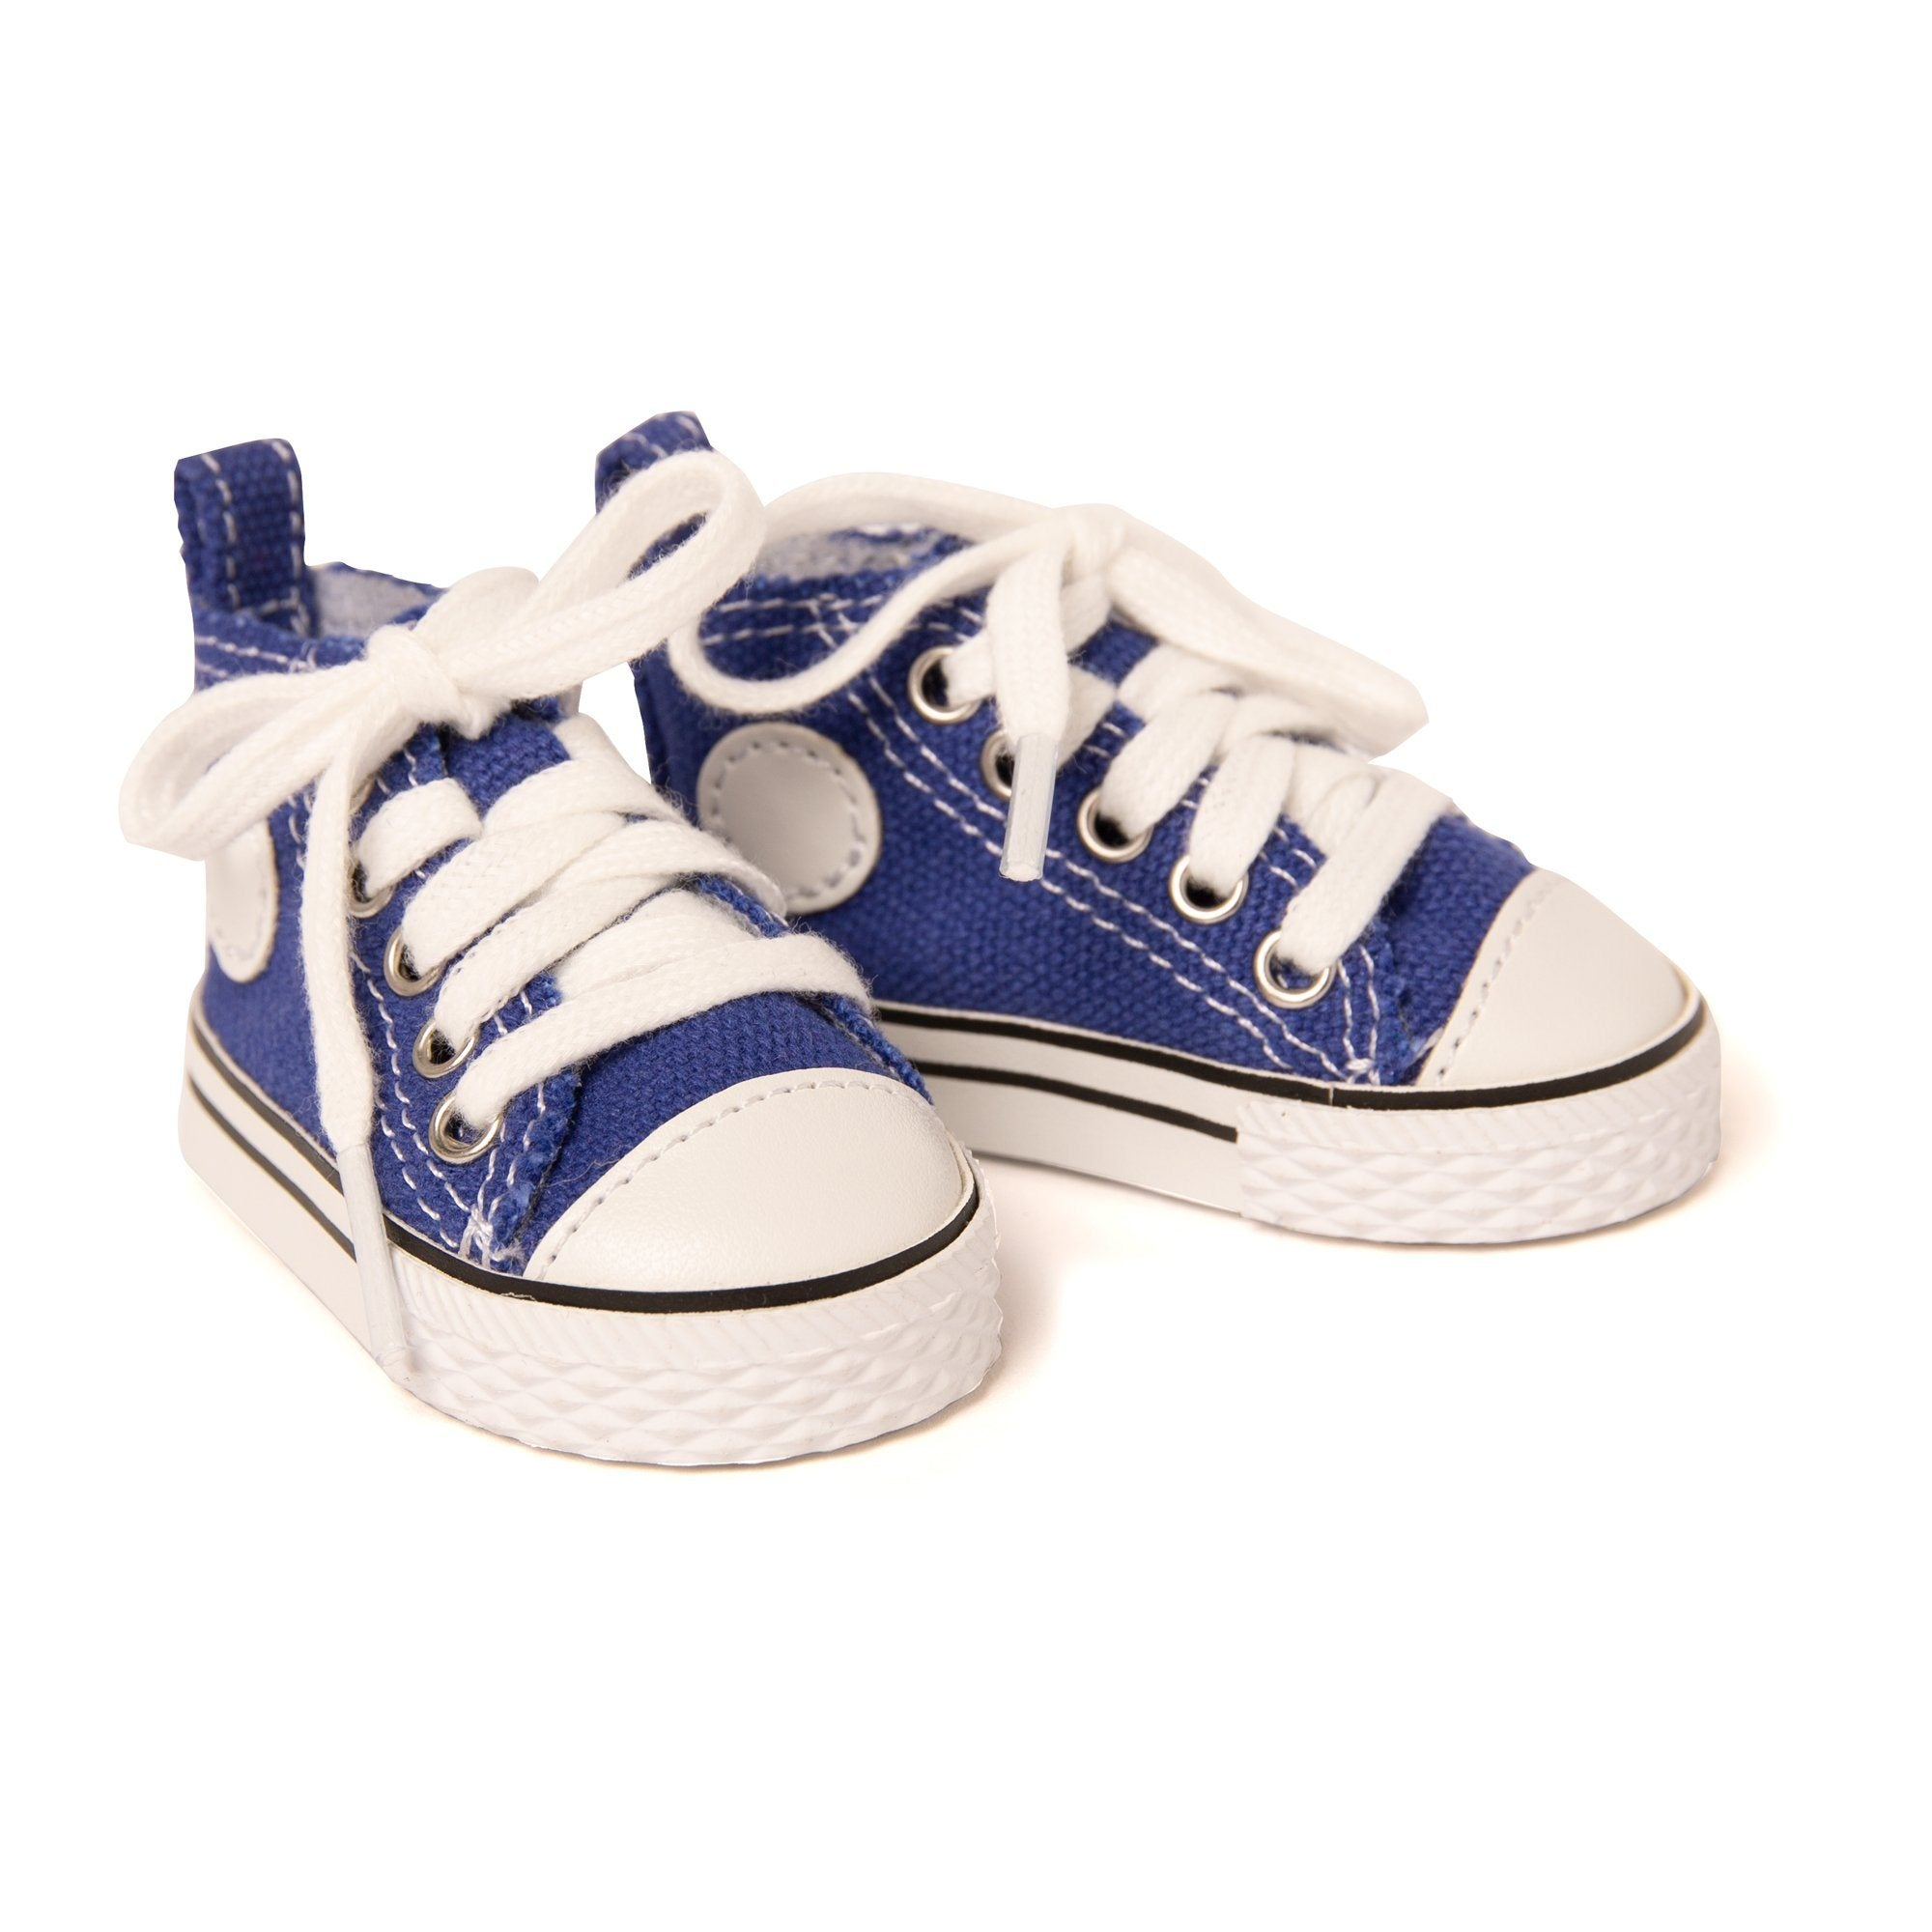 KM907 - Dark Blue High Tops